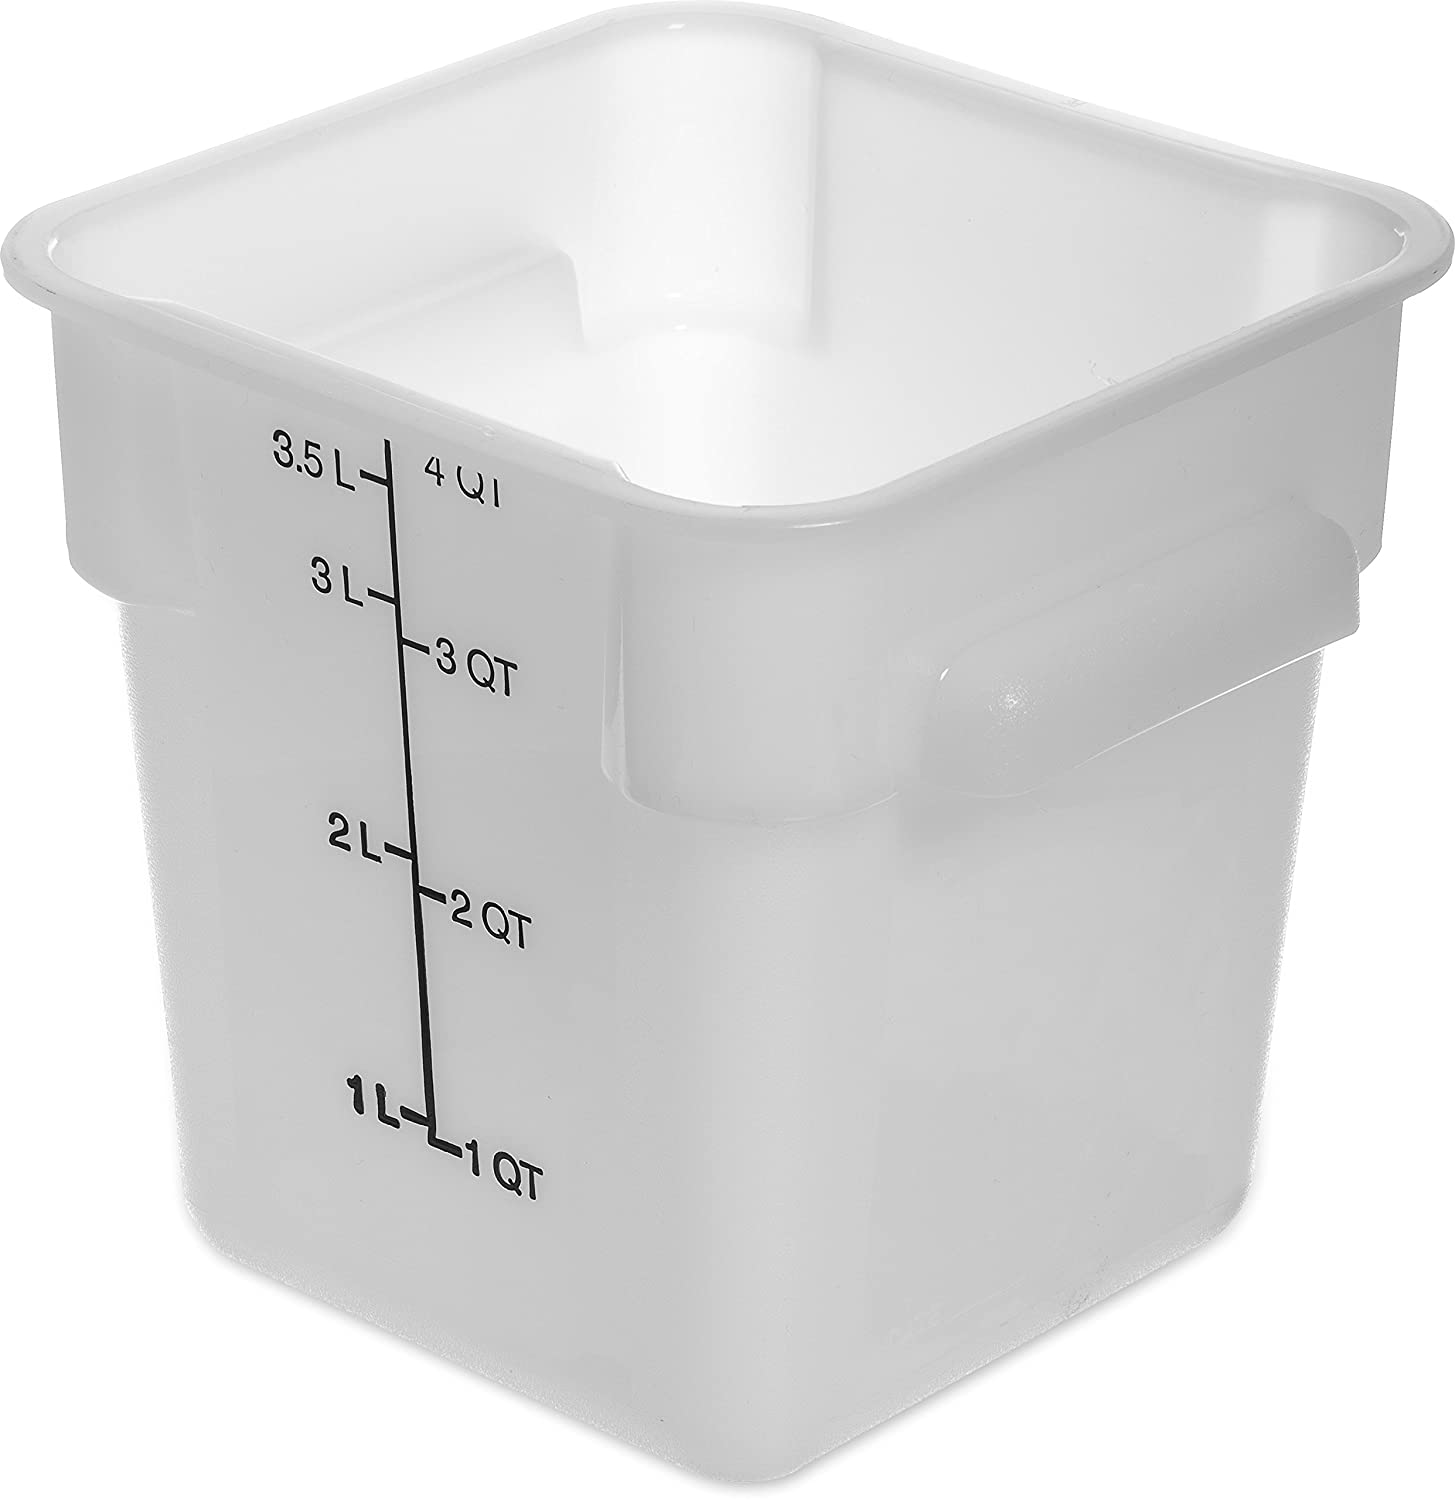 Carlisle 1073102 StorPlus 4 quart Square Food Storage Box, BPA Free, 7.13 Length x 7.13 Width x 7.29 Height, White (Pack of 6)